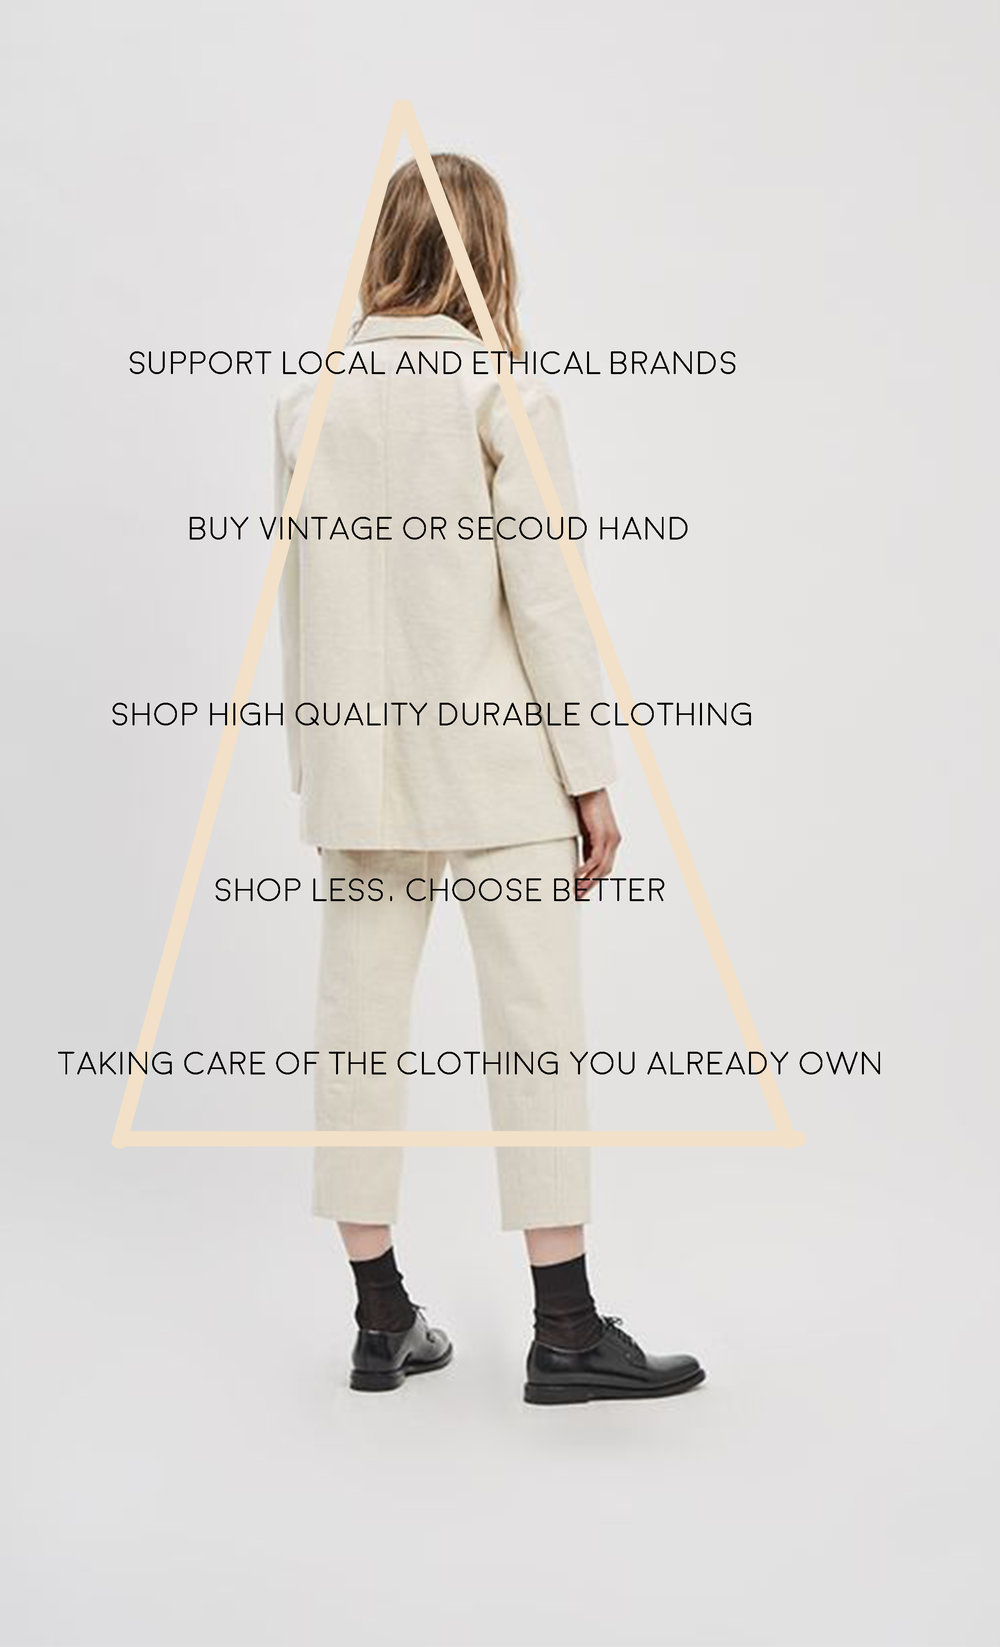 Project on promoting an ethical wardrobe  - Project for San Francisco State University's Apparel Design and Merhcedising program, Spring 2018.